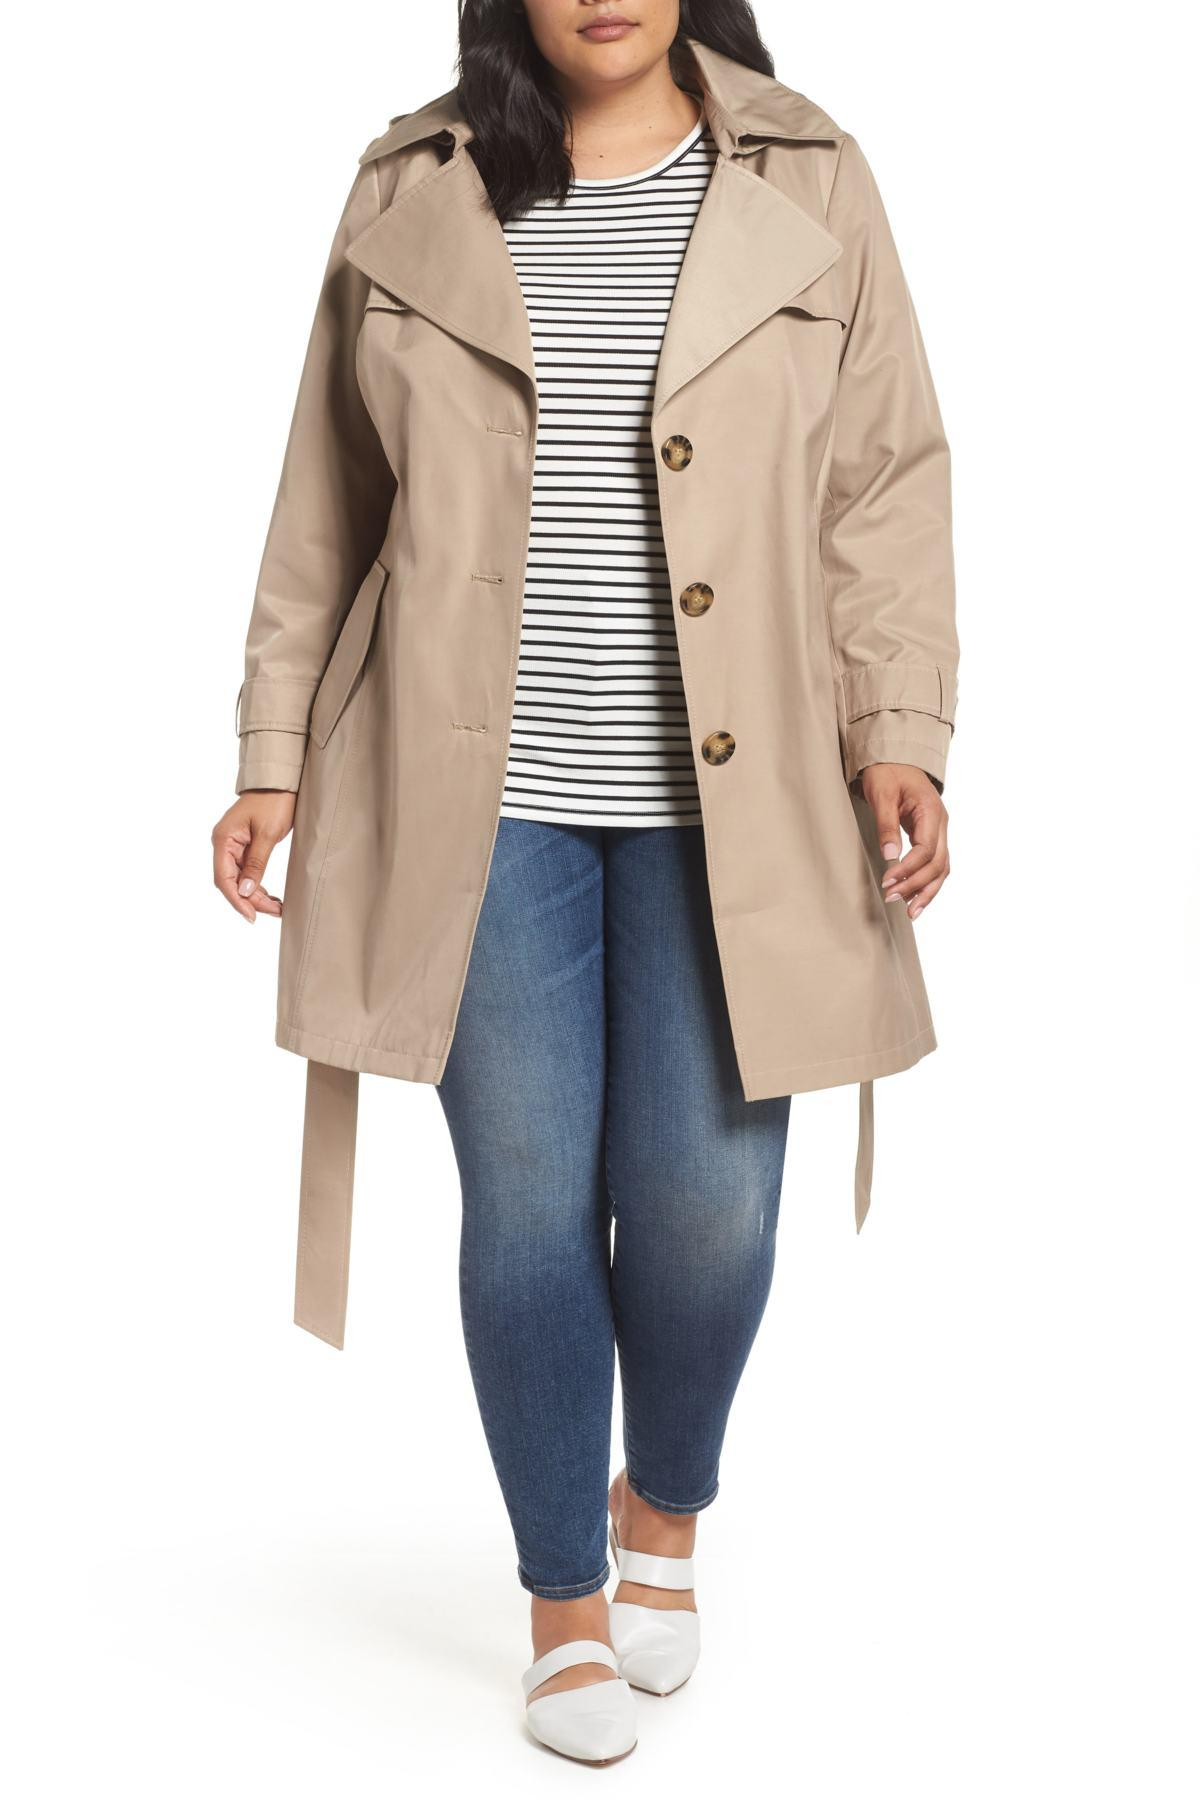 398e451d126 Lyst - Halogen Hooded Trench Coat (plus Size) in Natural